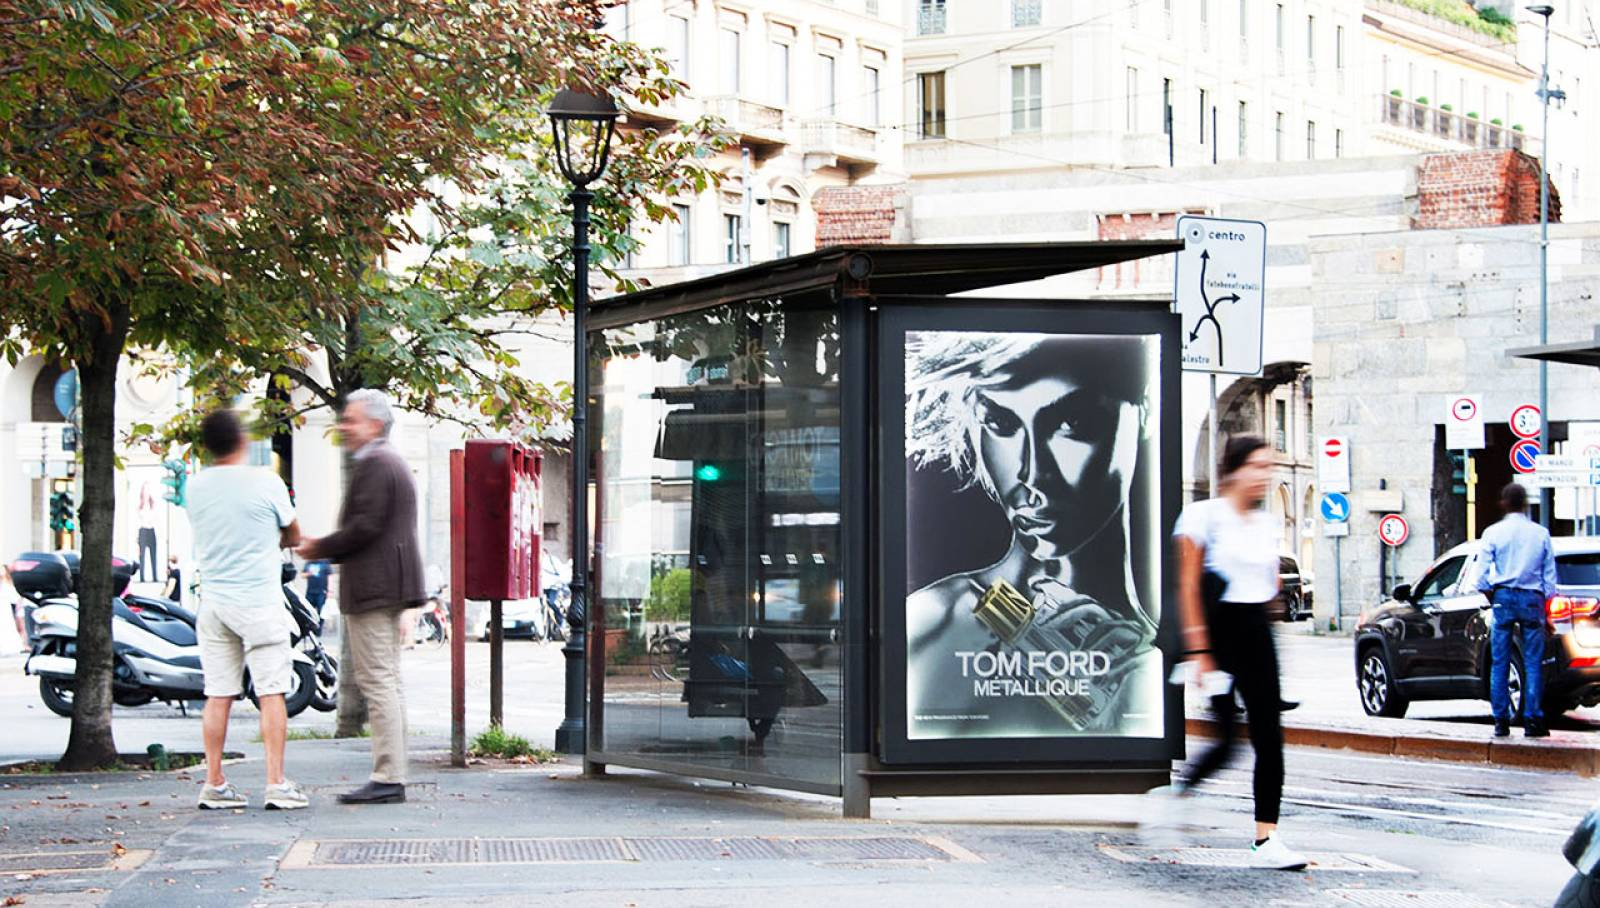 OOH IGPDecaux Milan bus shelters for Tom Ford